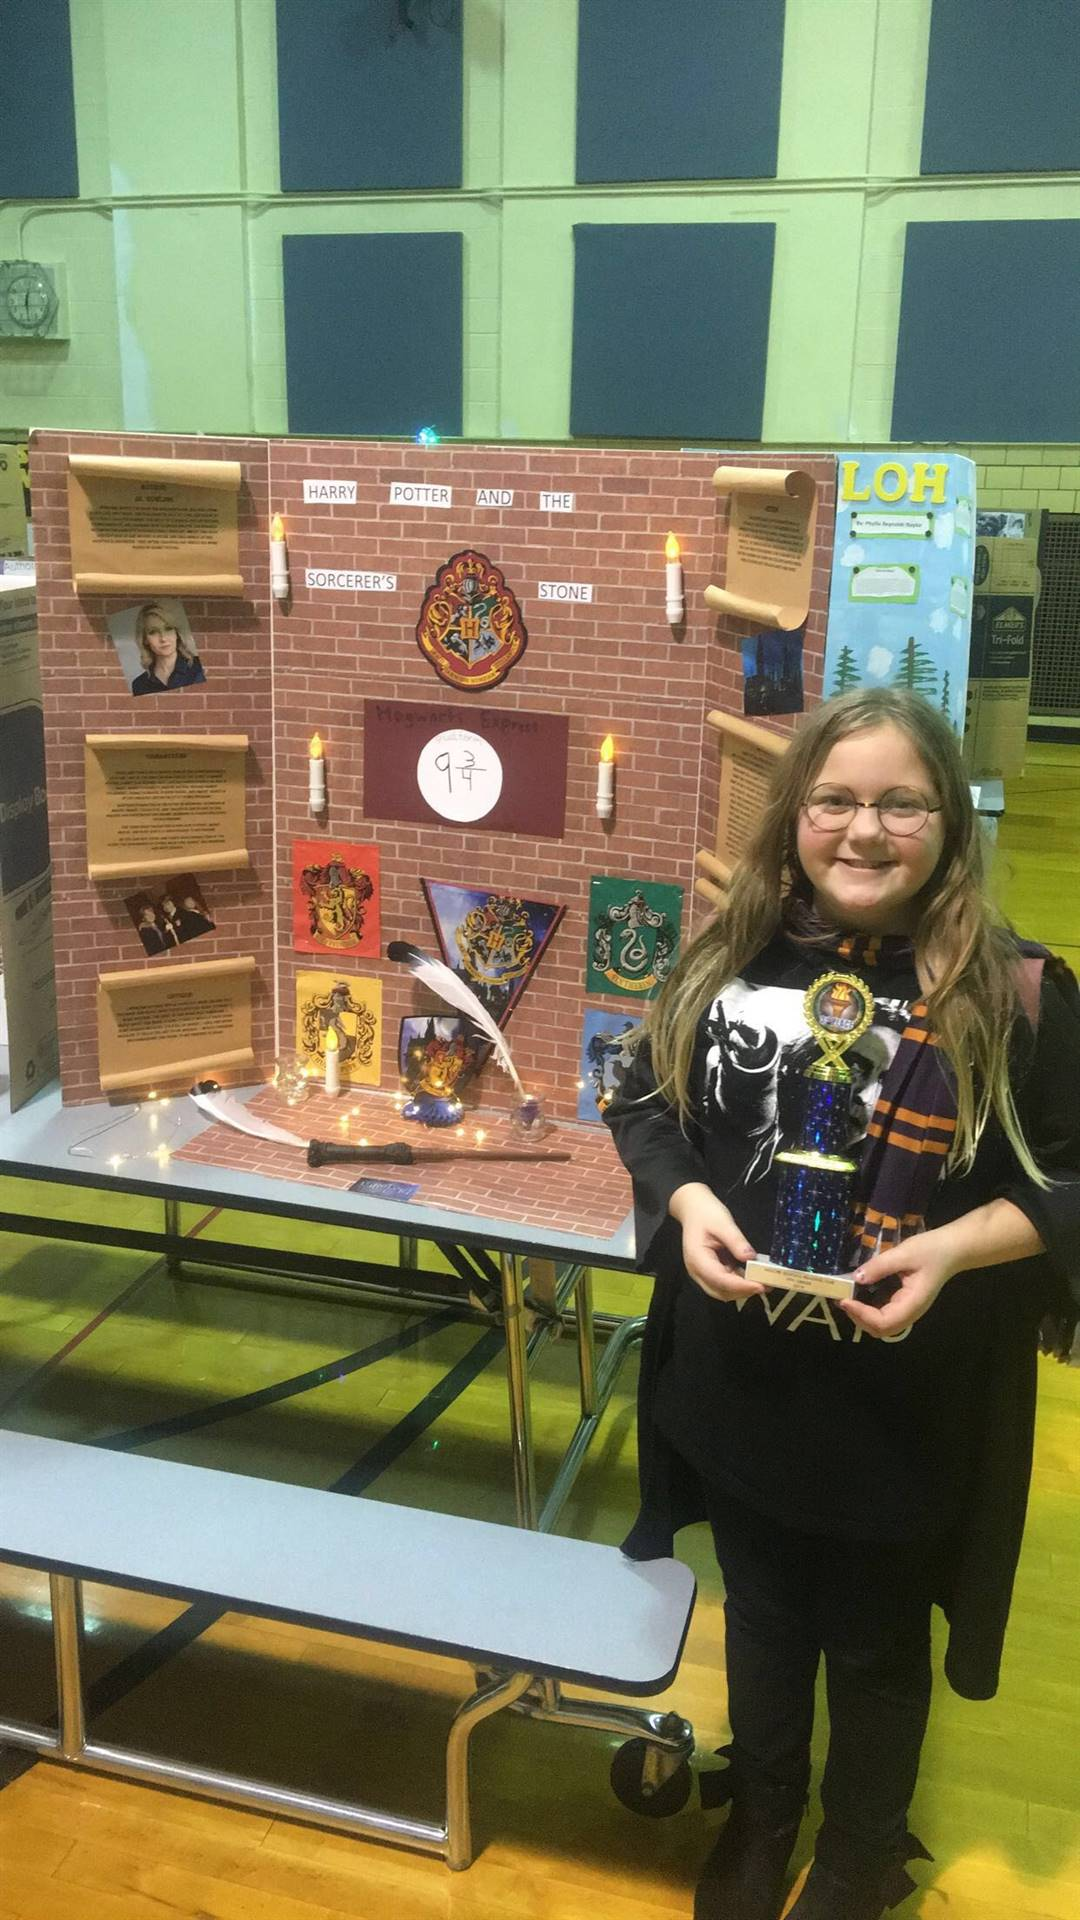 Student that placed in the reading fair with their trophy and poster.